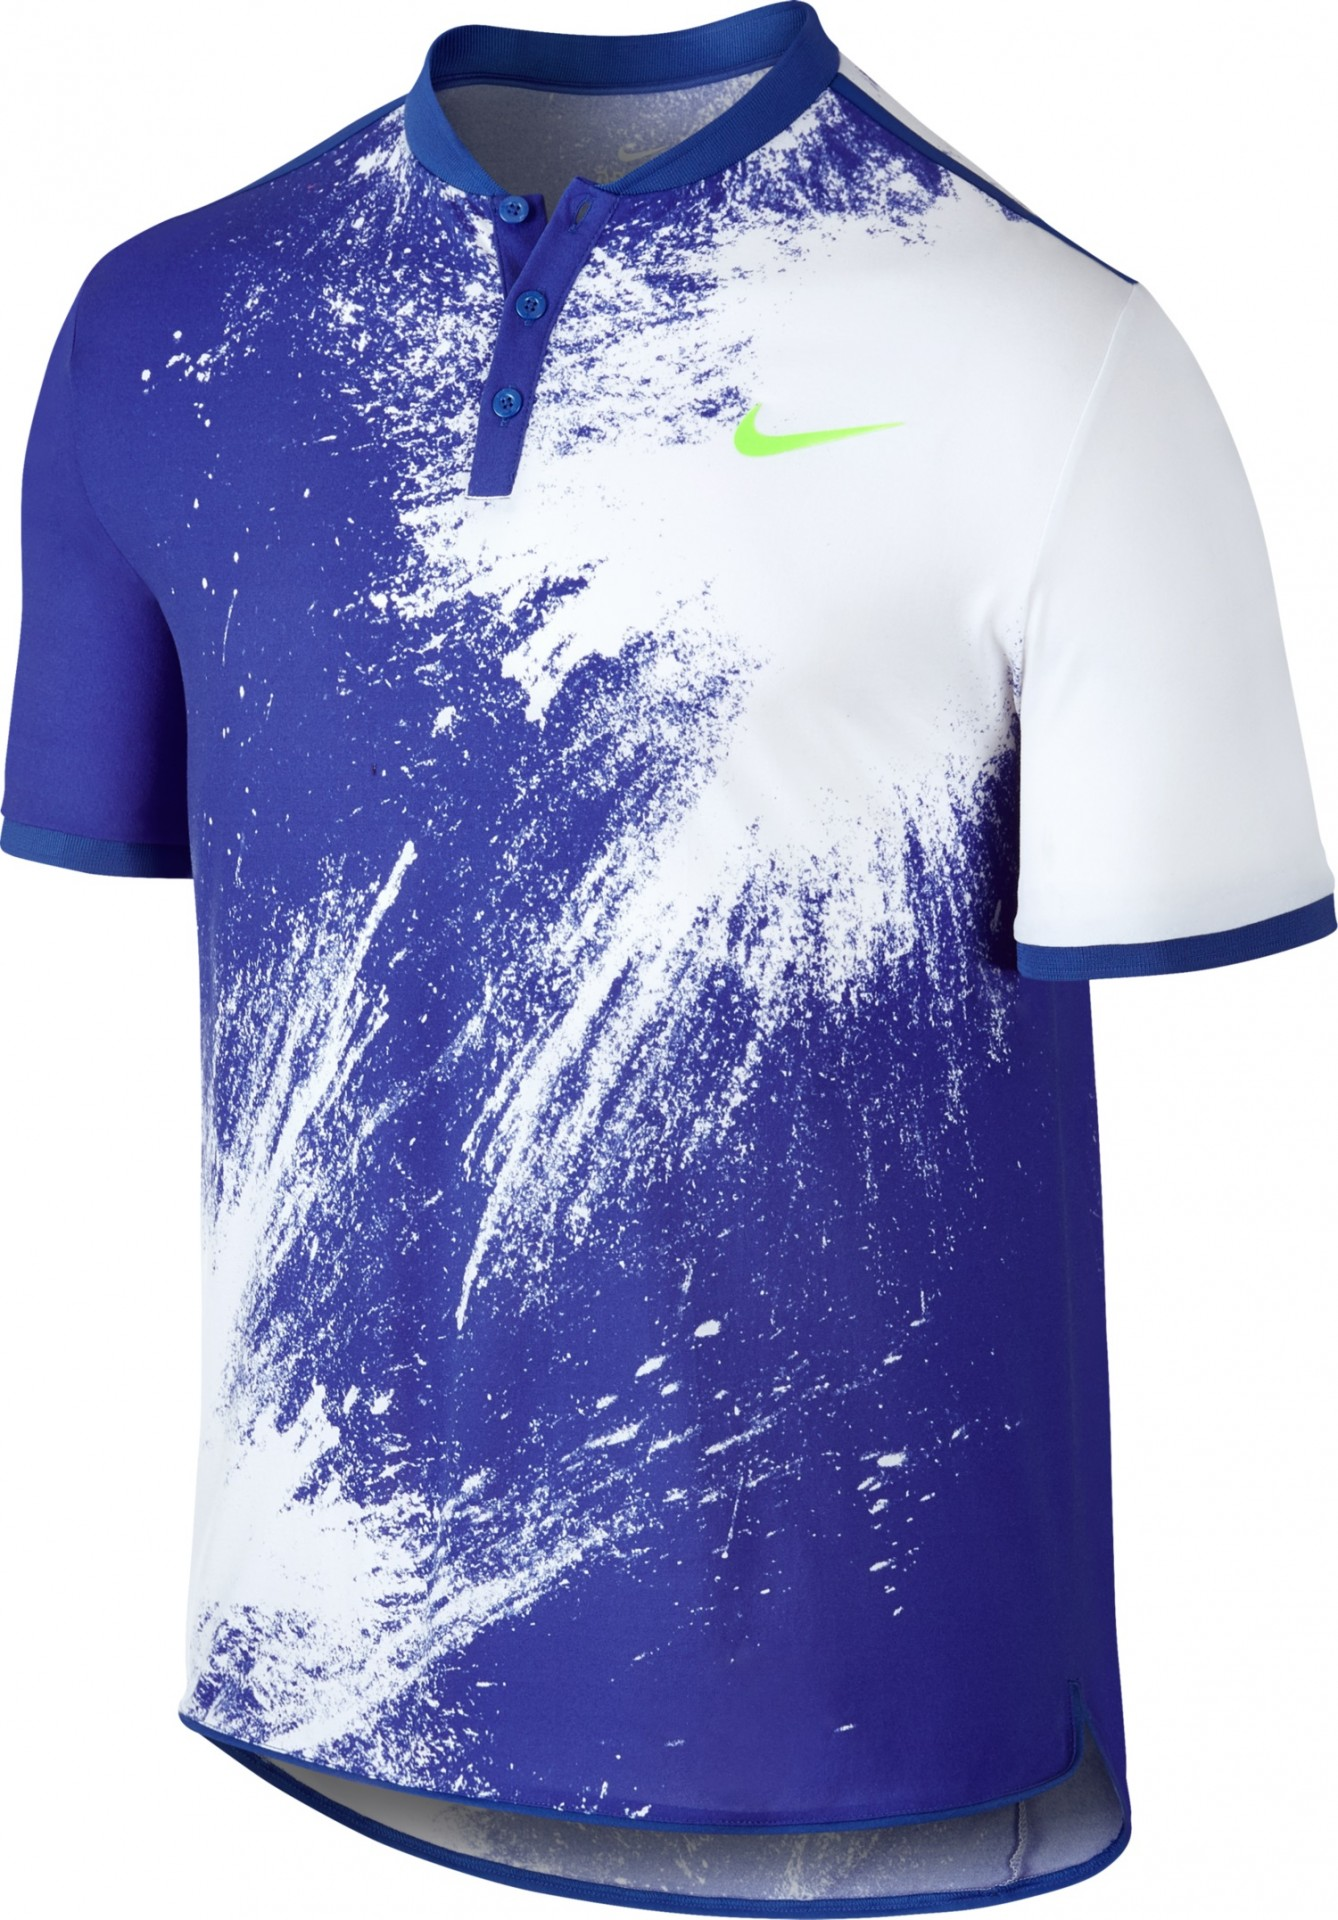 924c57039e1f74 Herren Tennis-T-Shirt Nike Court Breathe Advantage Polo Topspin 836457-452  blau